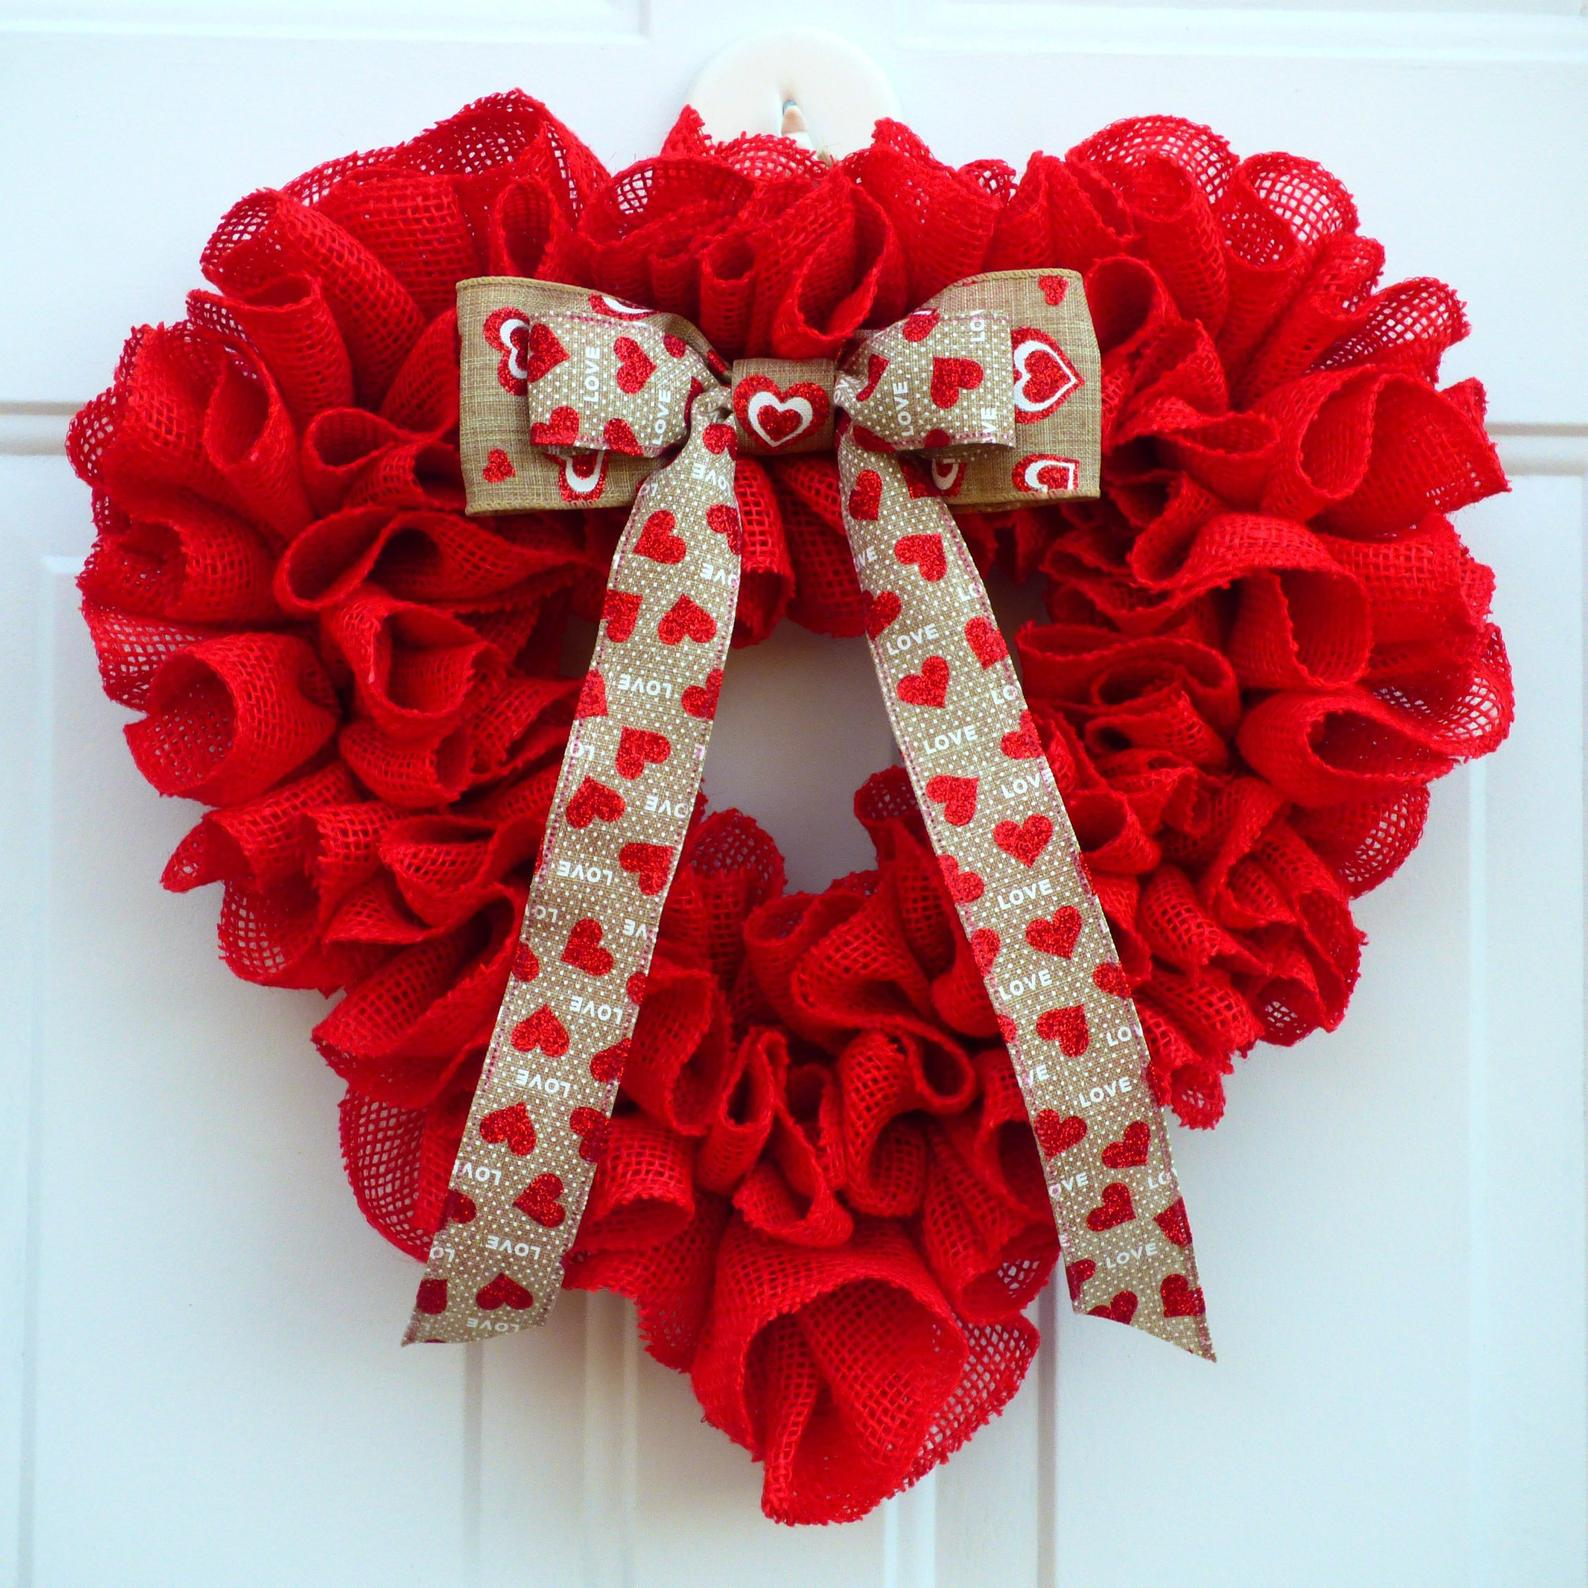 Red heart-shaped wreath with burlap